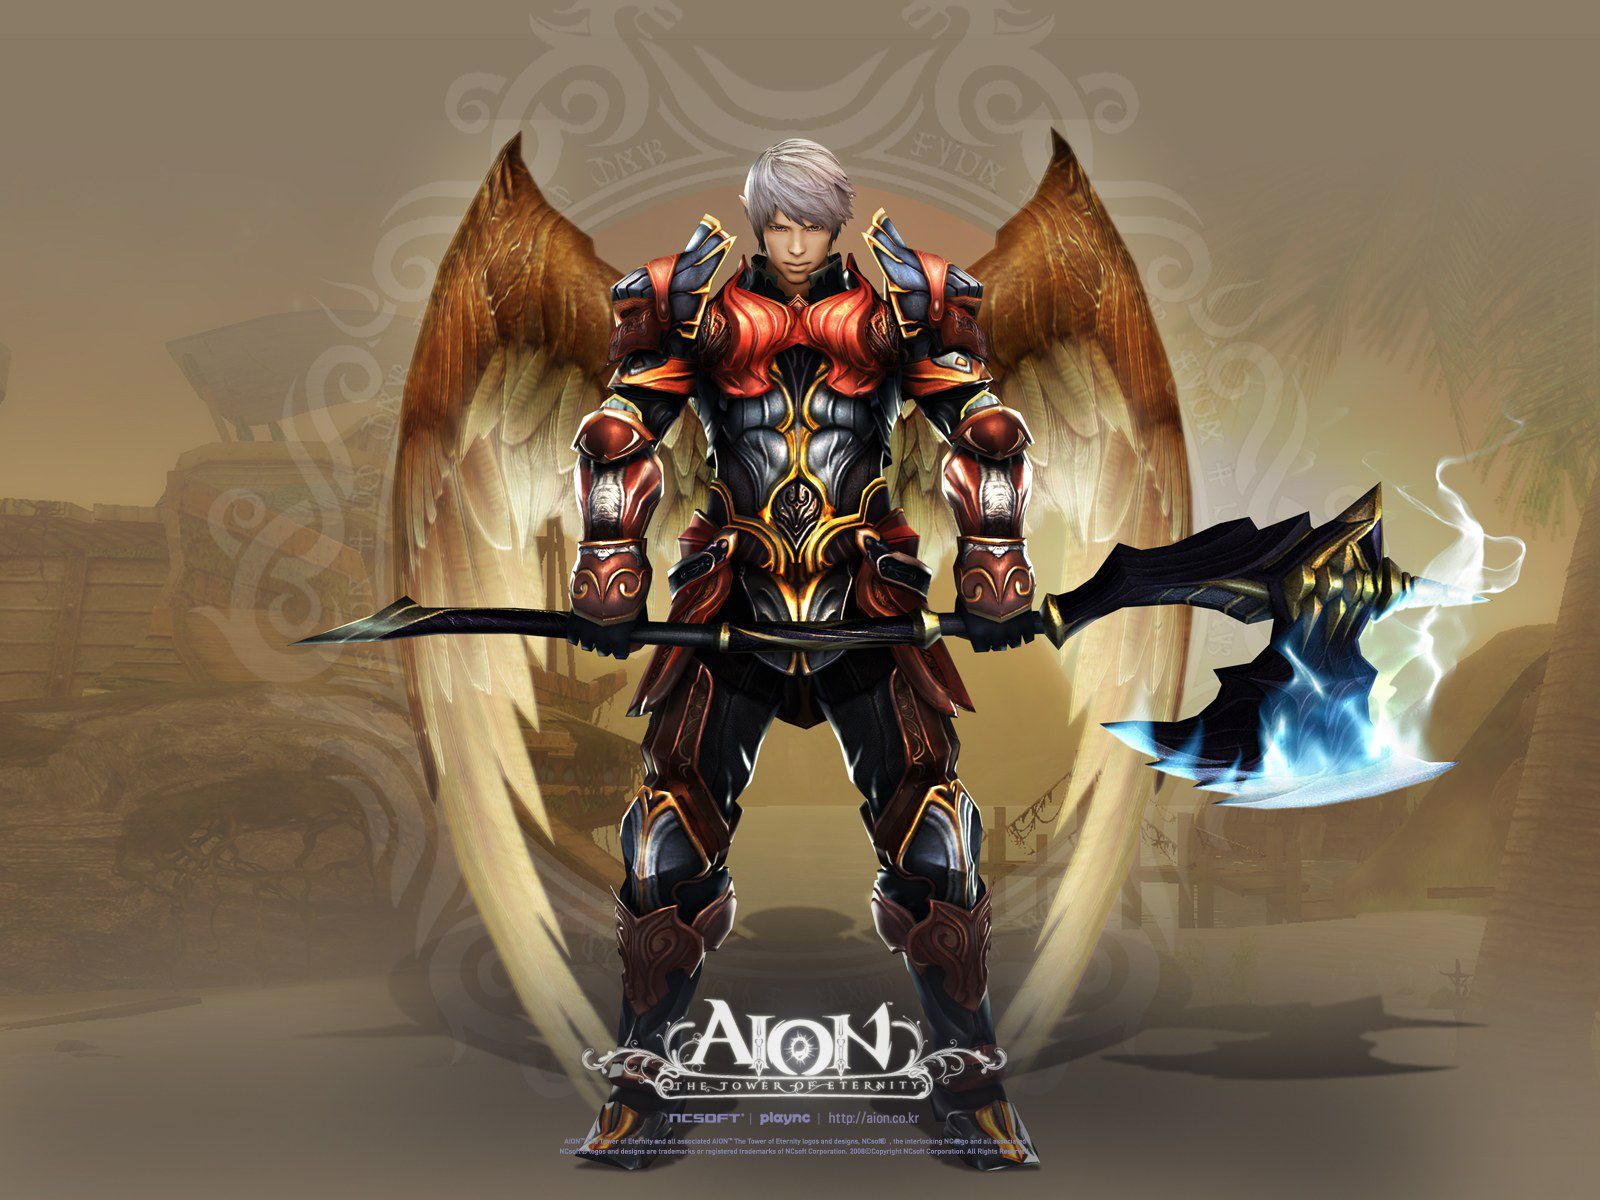 Download_Aion_Full_HD_Wallpapers-cgfrog_com_18